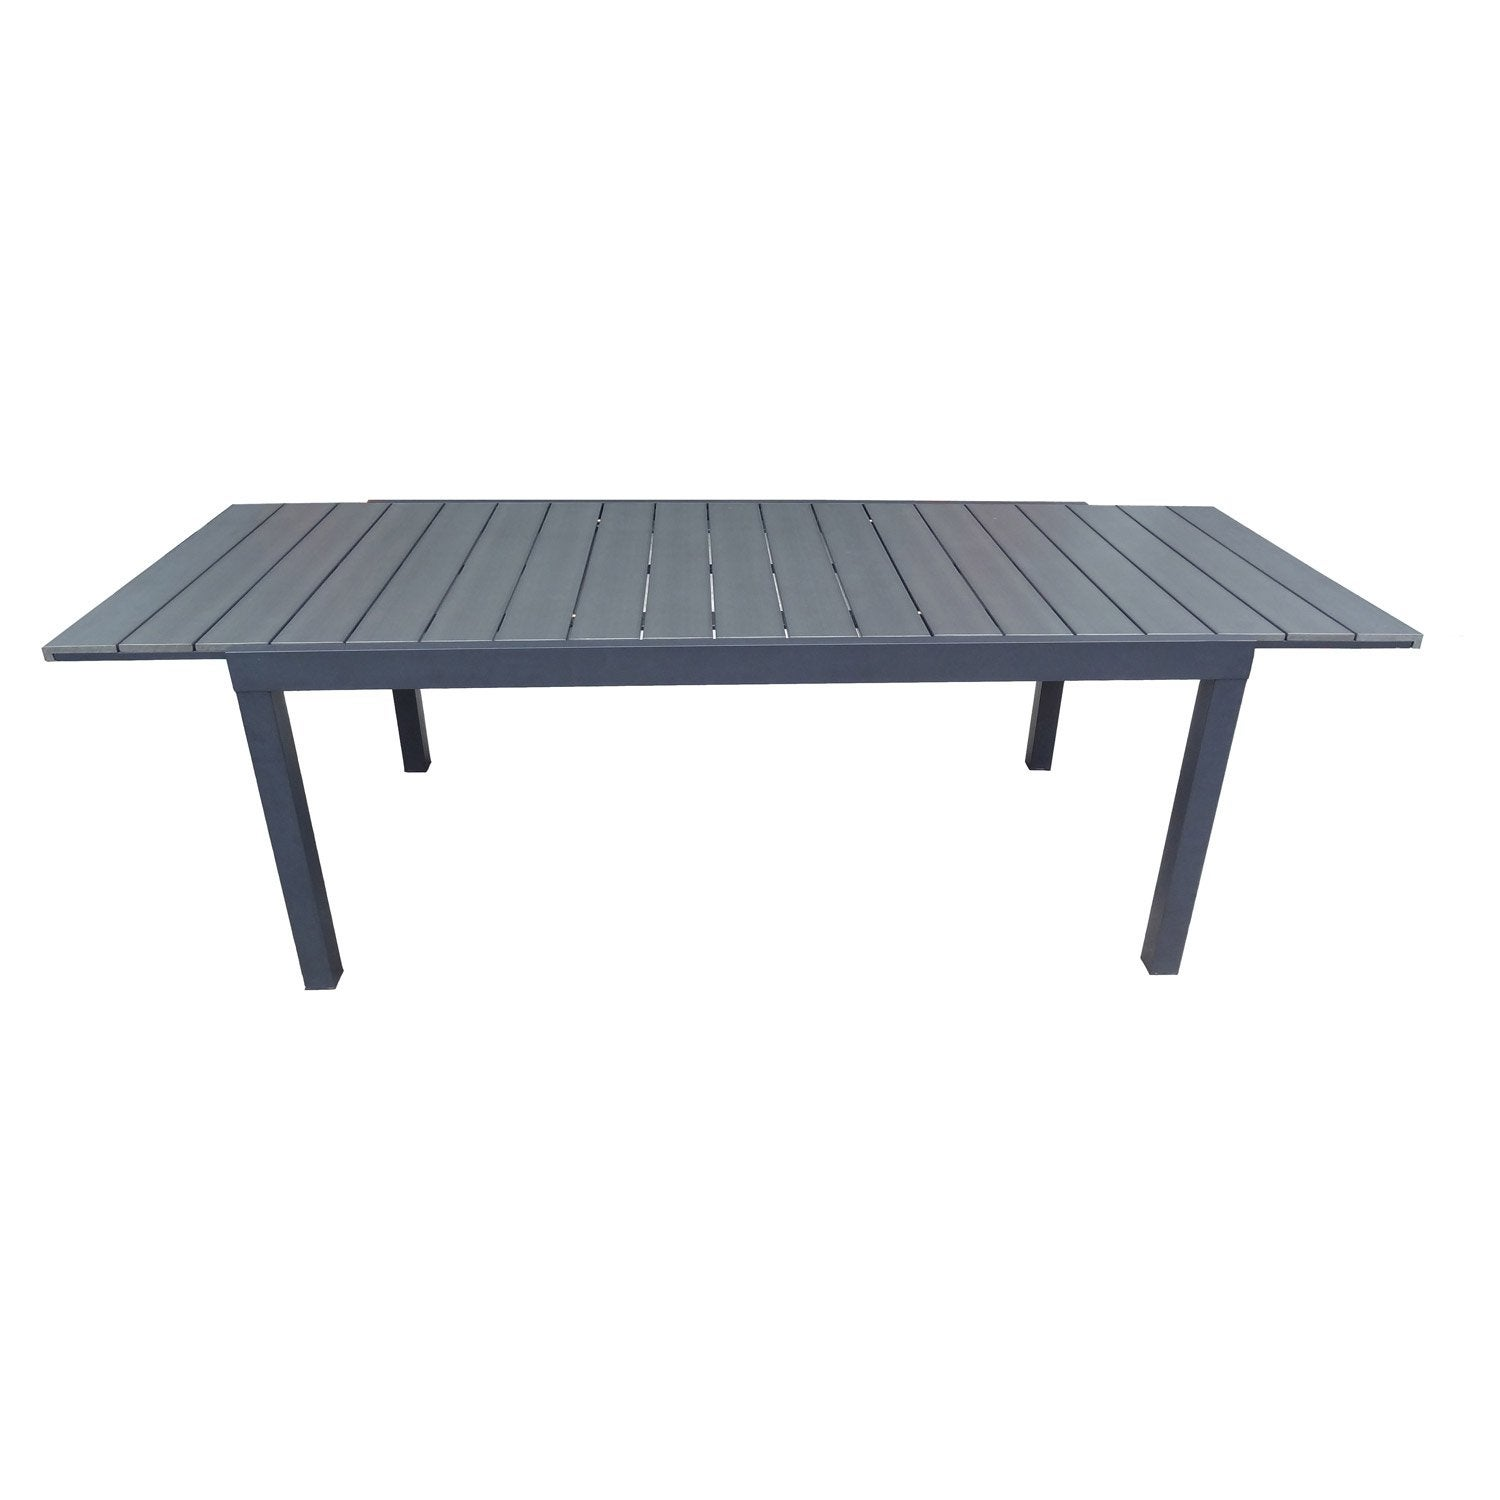 Table de jardin naterial pratt rectangulaire gris leroy merlin - Leroy merlin table jardin ...